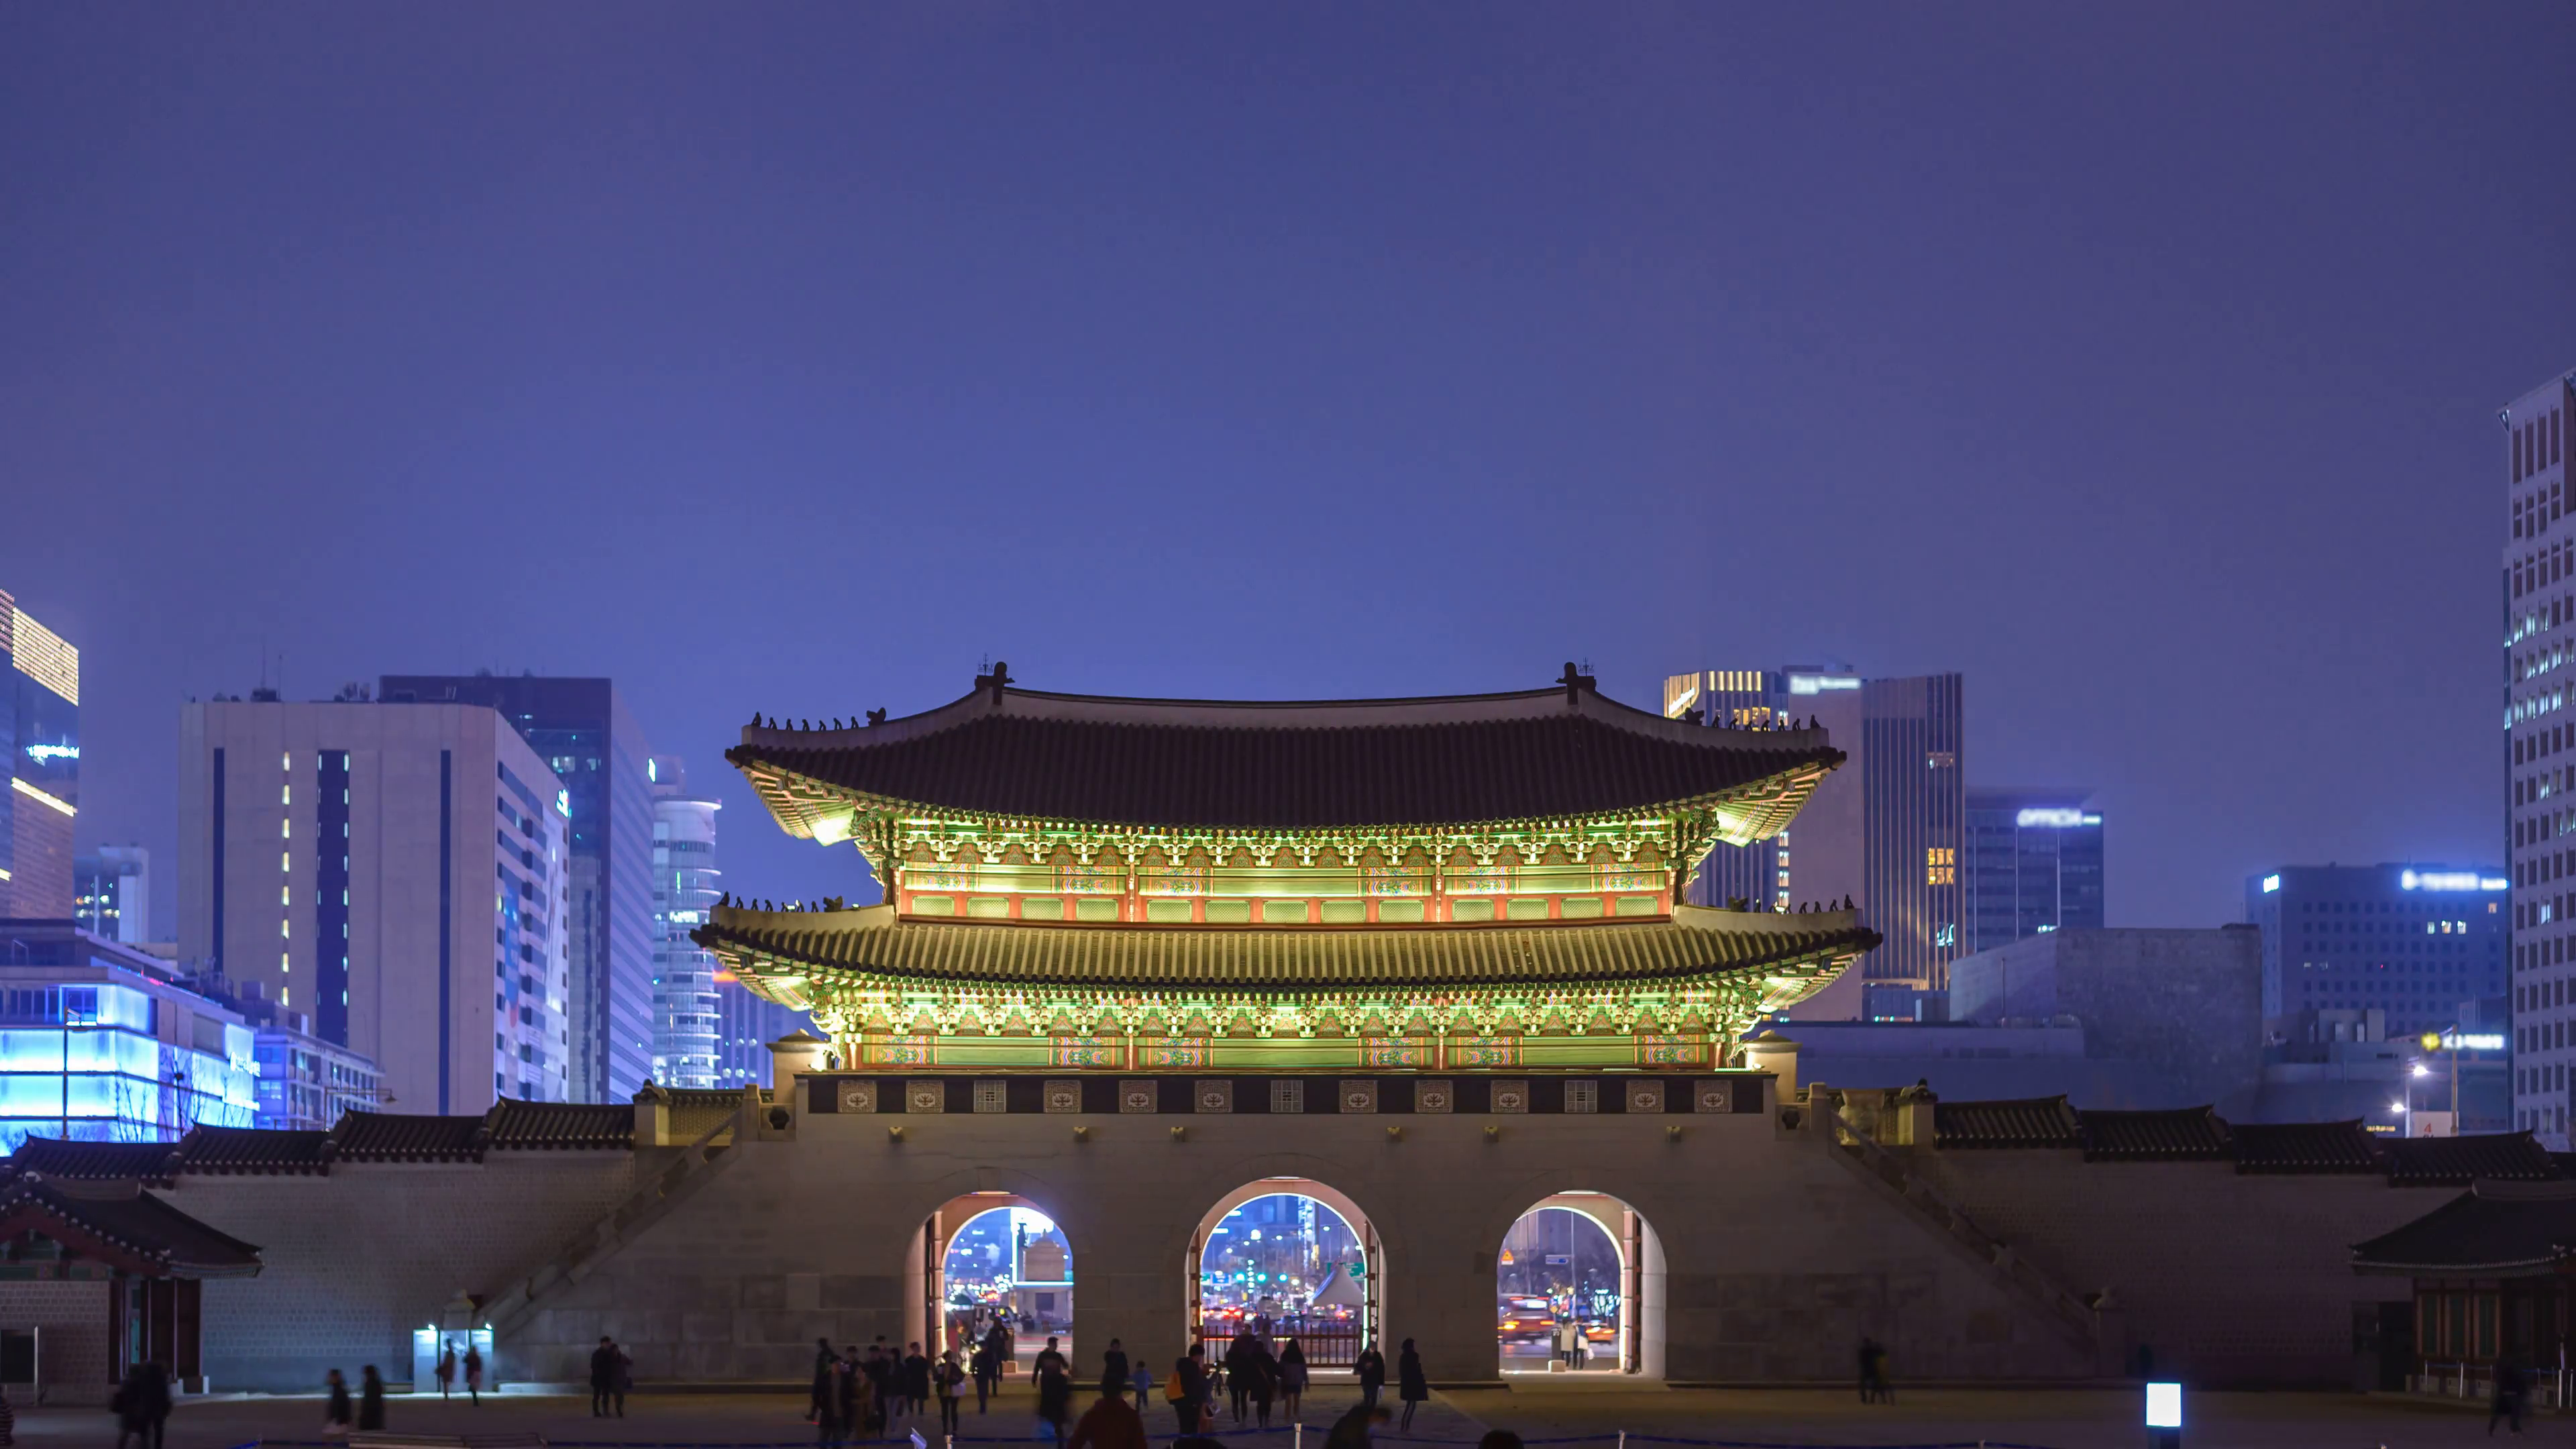 Gwanghwamun Seoul, Timelapse at Gwanghwamun Gate by night, Seoul, South Korea, 4K ...